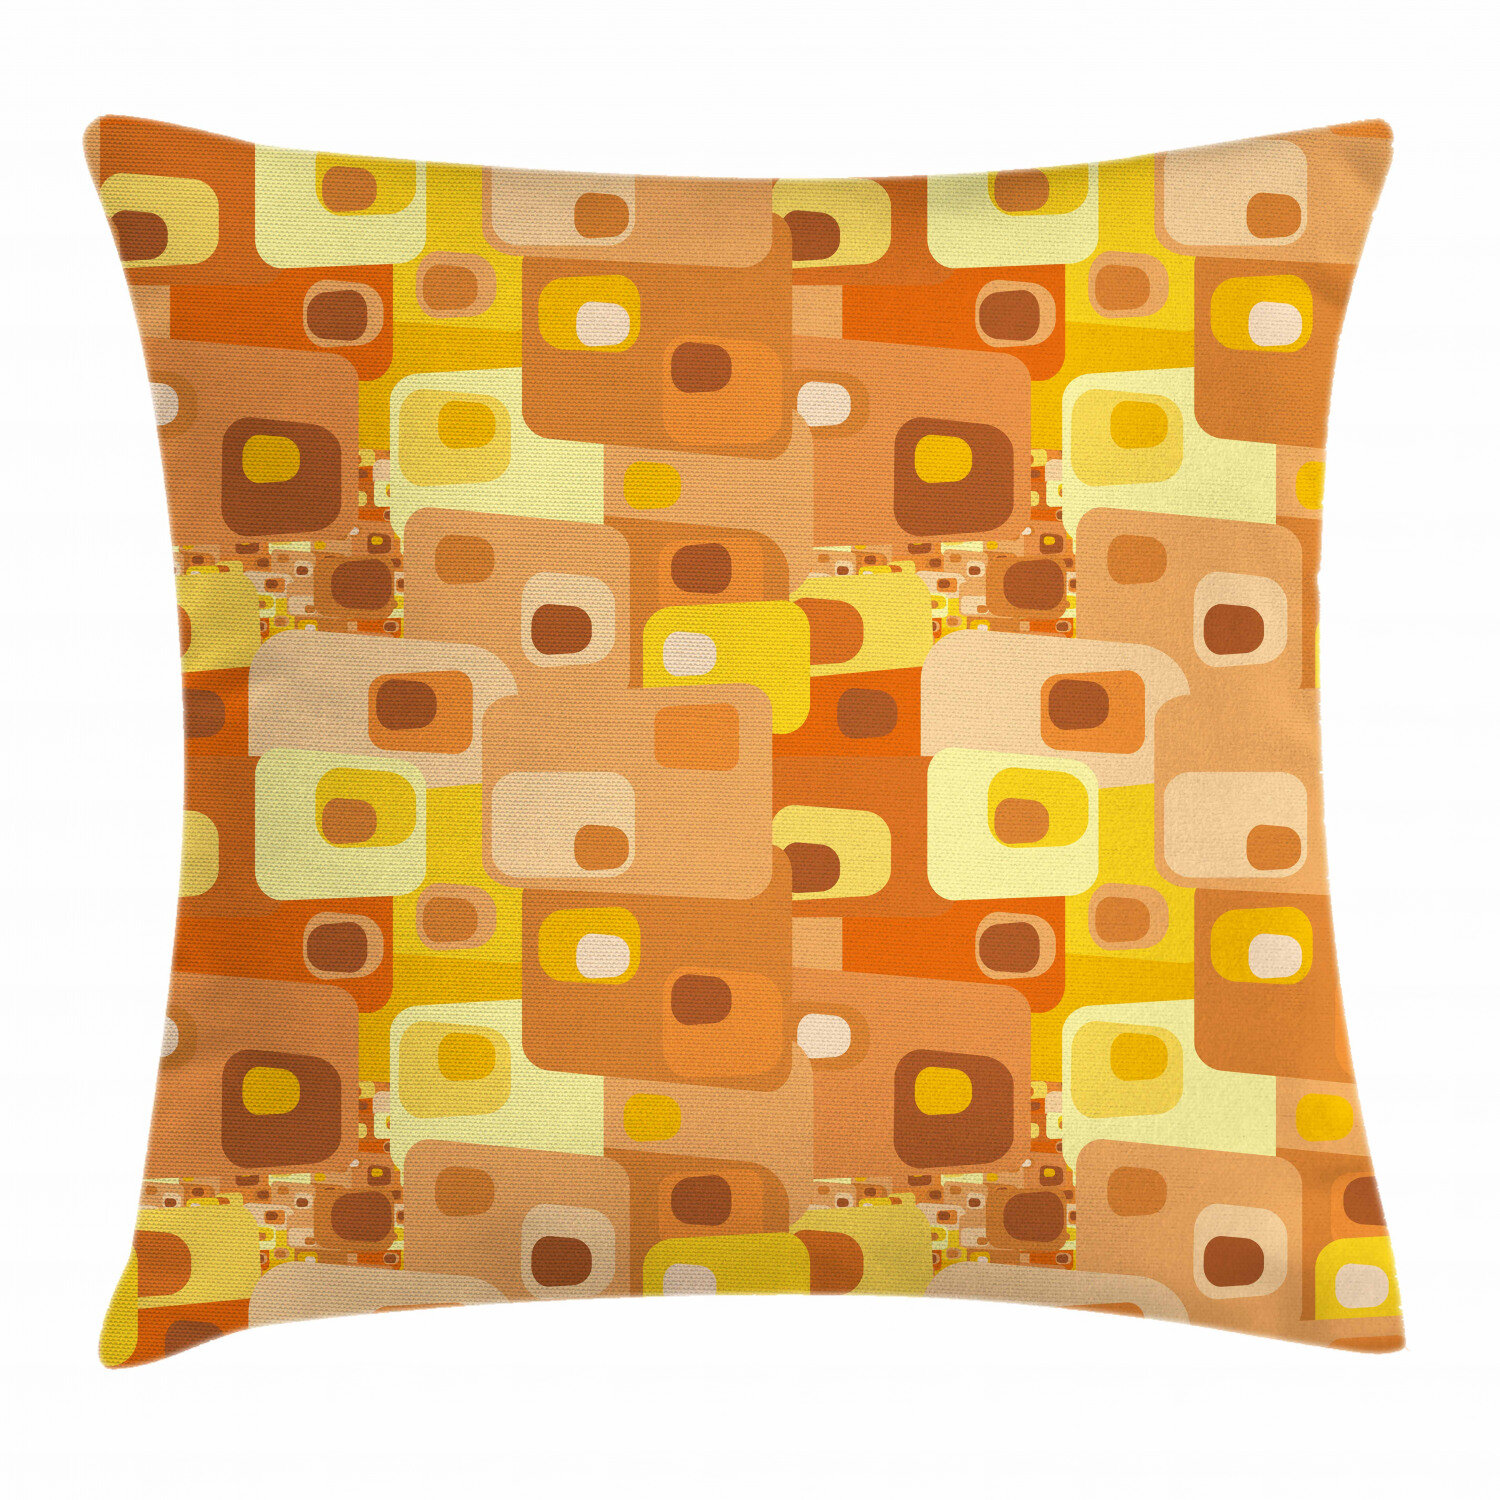 East Urban Home Ambesonne Retro Throw Pillow Cushion Cover Abstract Square Pattern Rounded Funky Geometric Modern Ornament Tiled Illustration Decorative Square Accent Pillow Case 26 X 26 Multicolor Wayfair